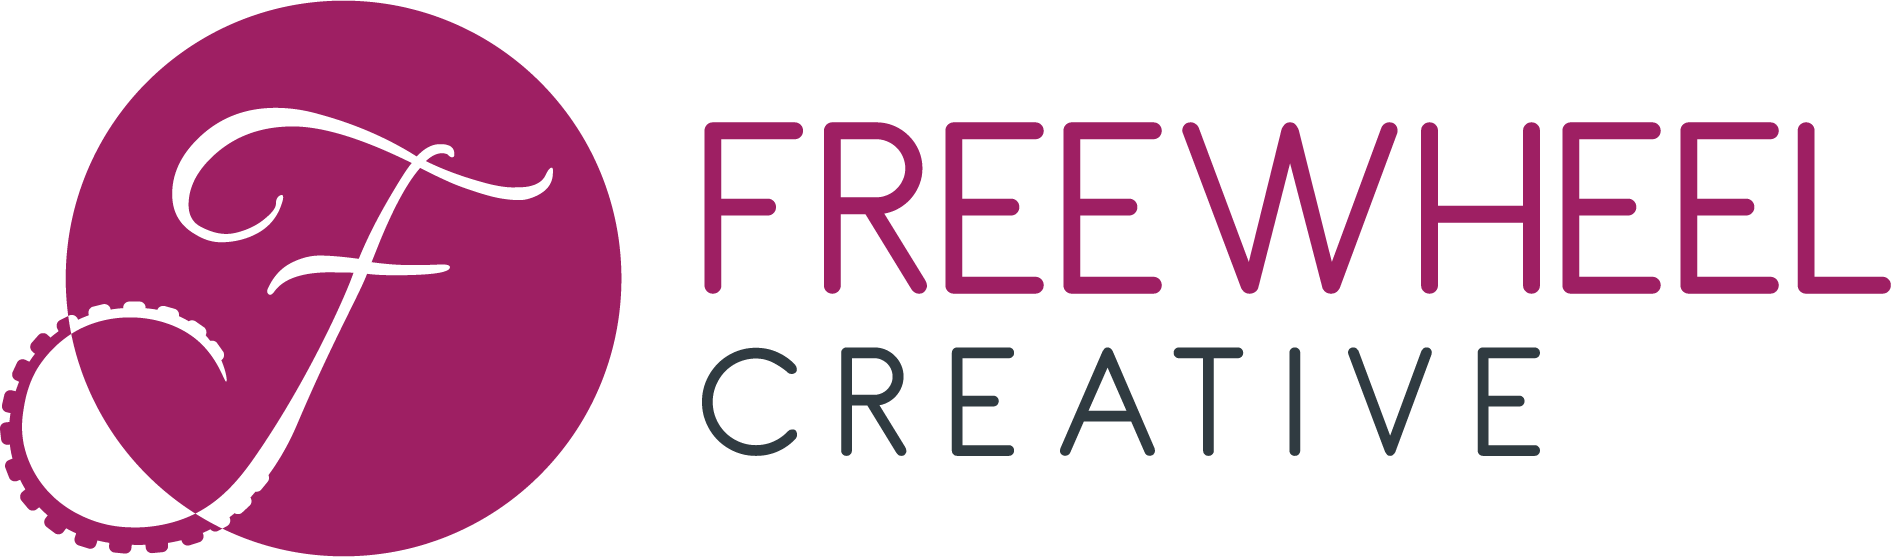 Freewheel Creative Logo